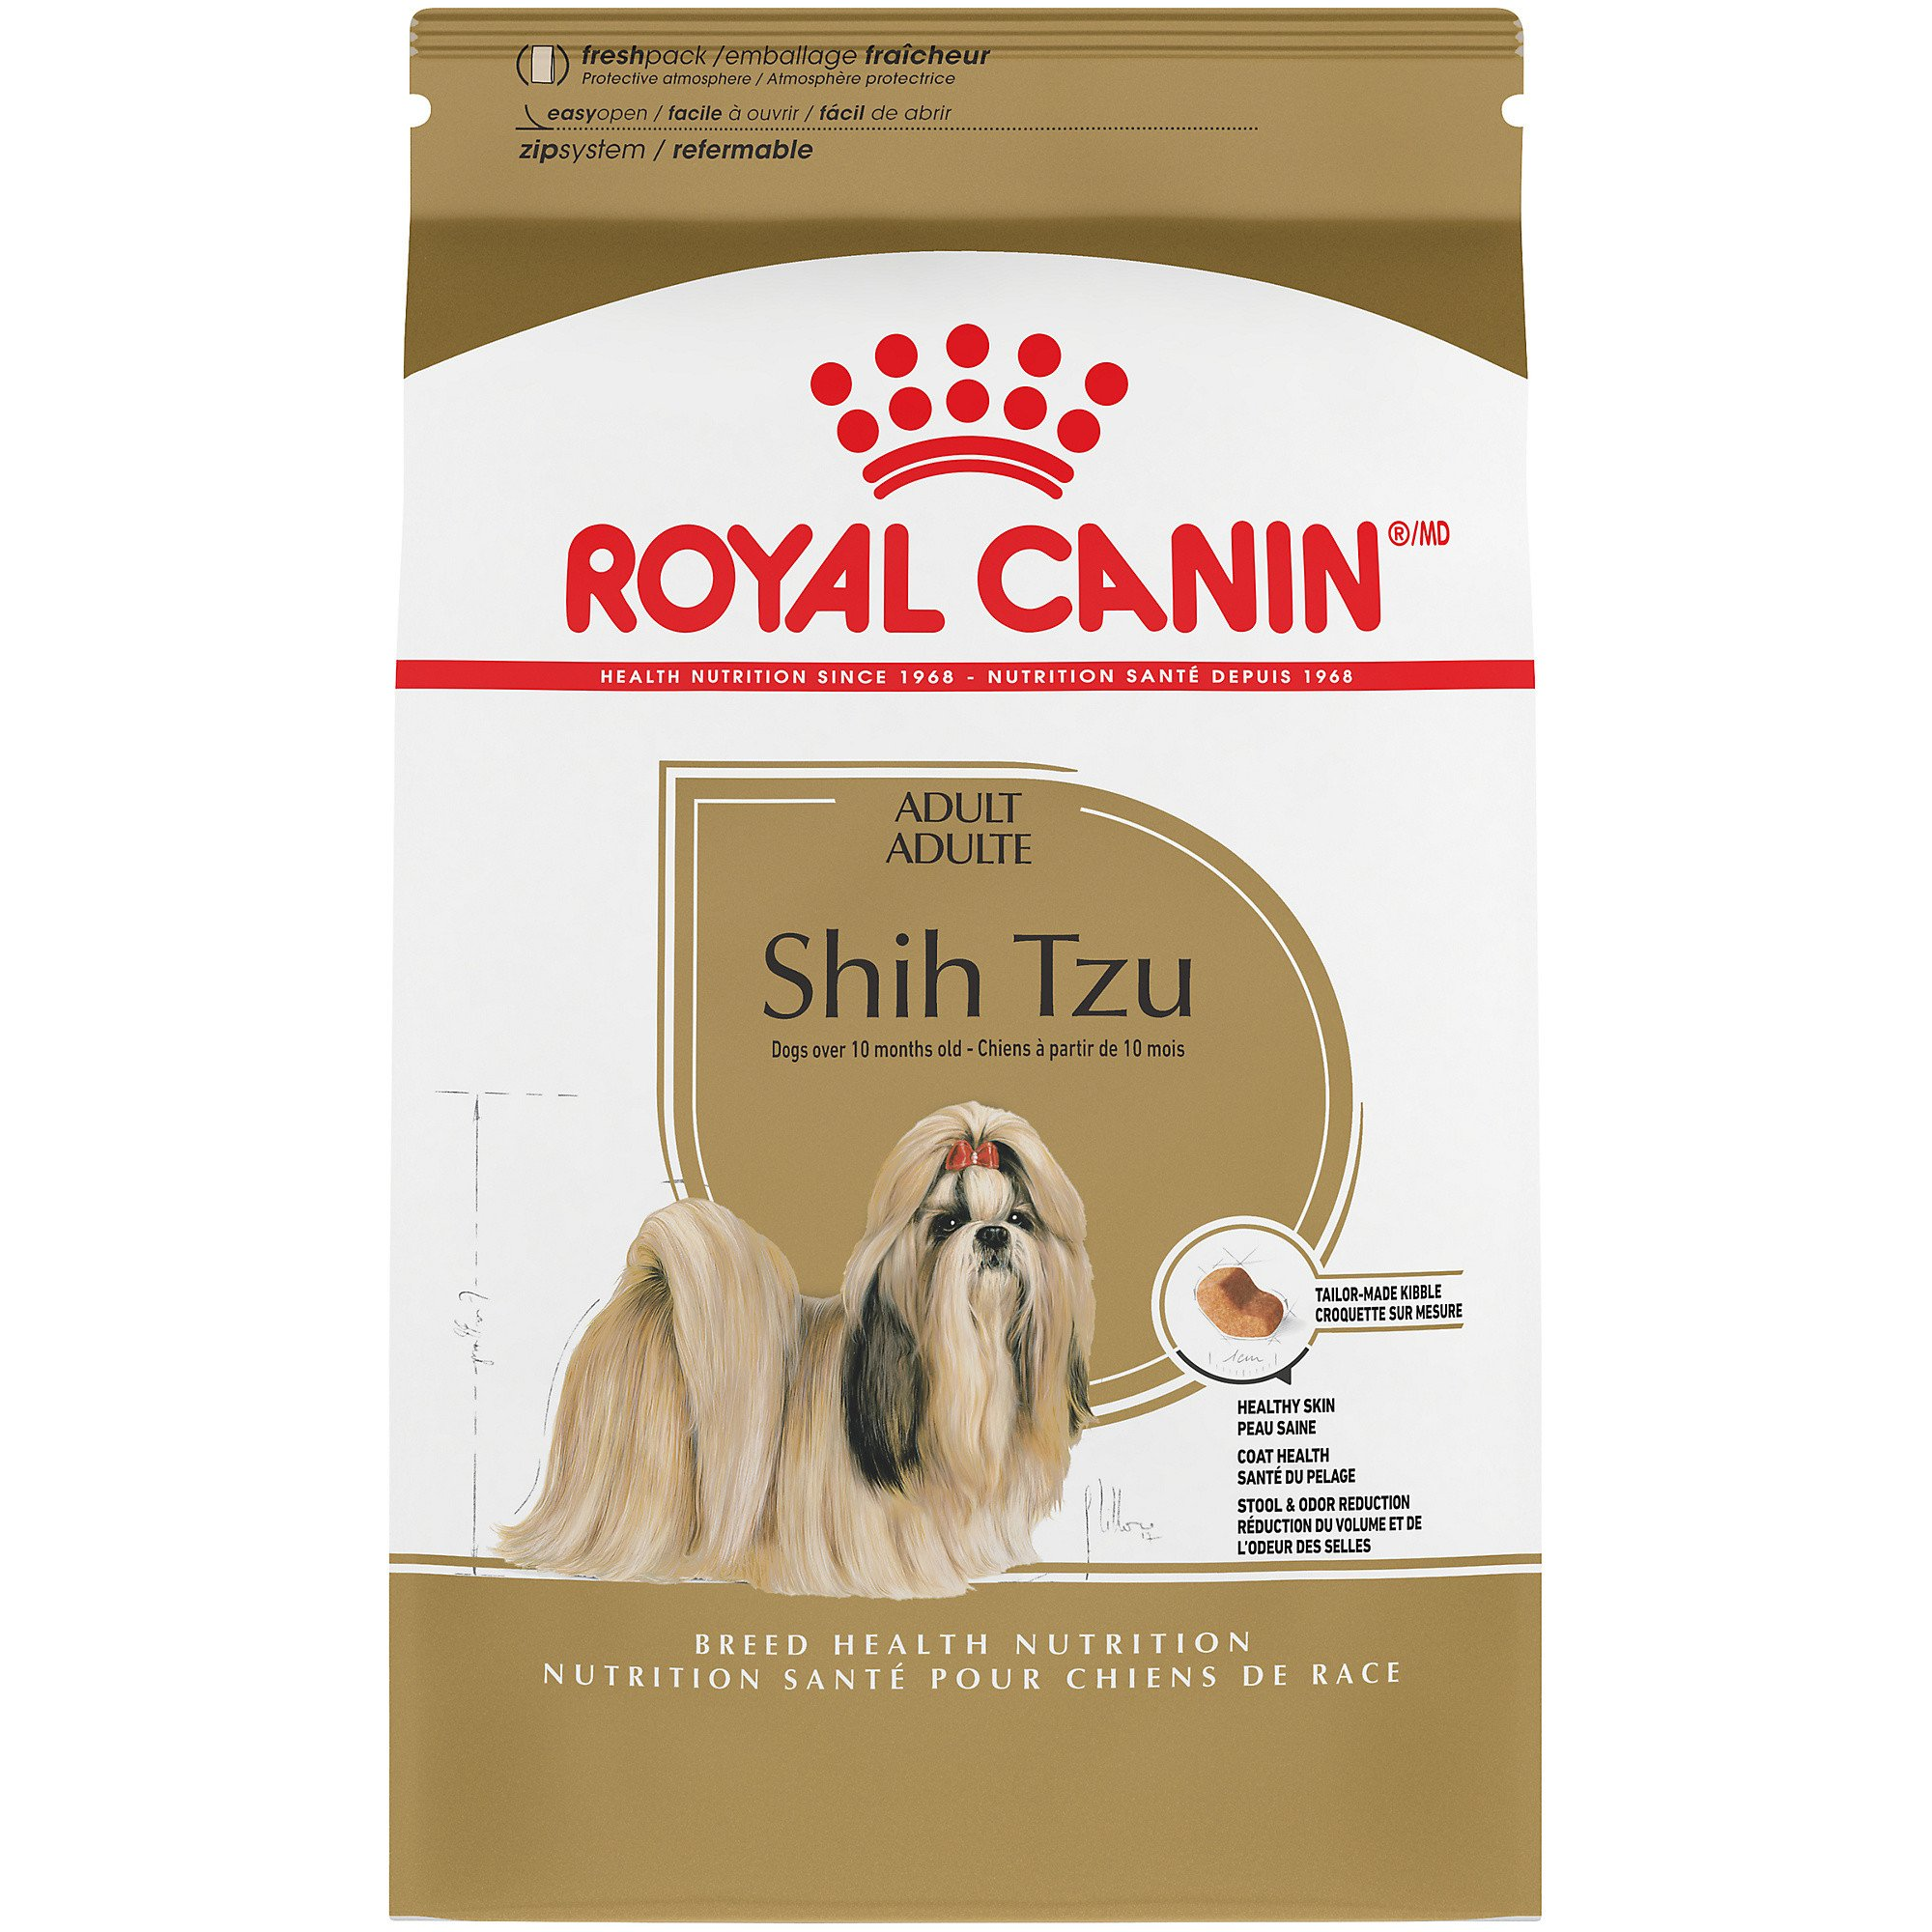 Royal Canin Breed Health Nutrition Shih Tzu Adult Dry Dog Food, 2.5 lbs.